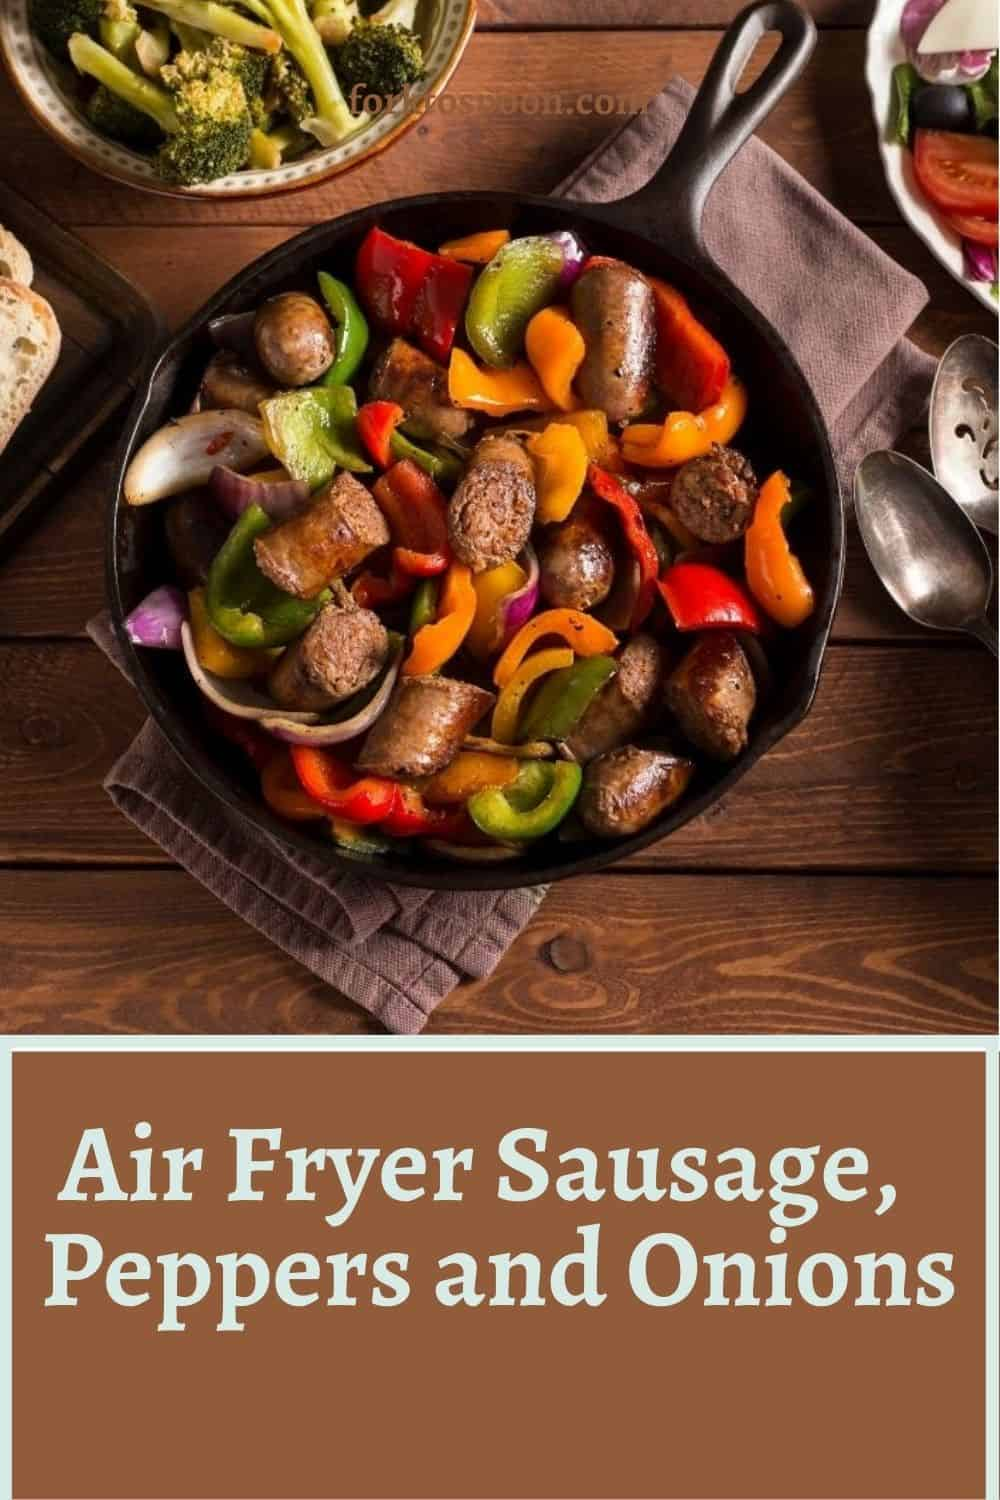 Air Fryer Sausage Peppers and Onions